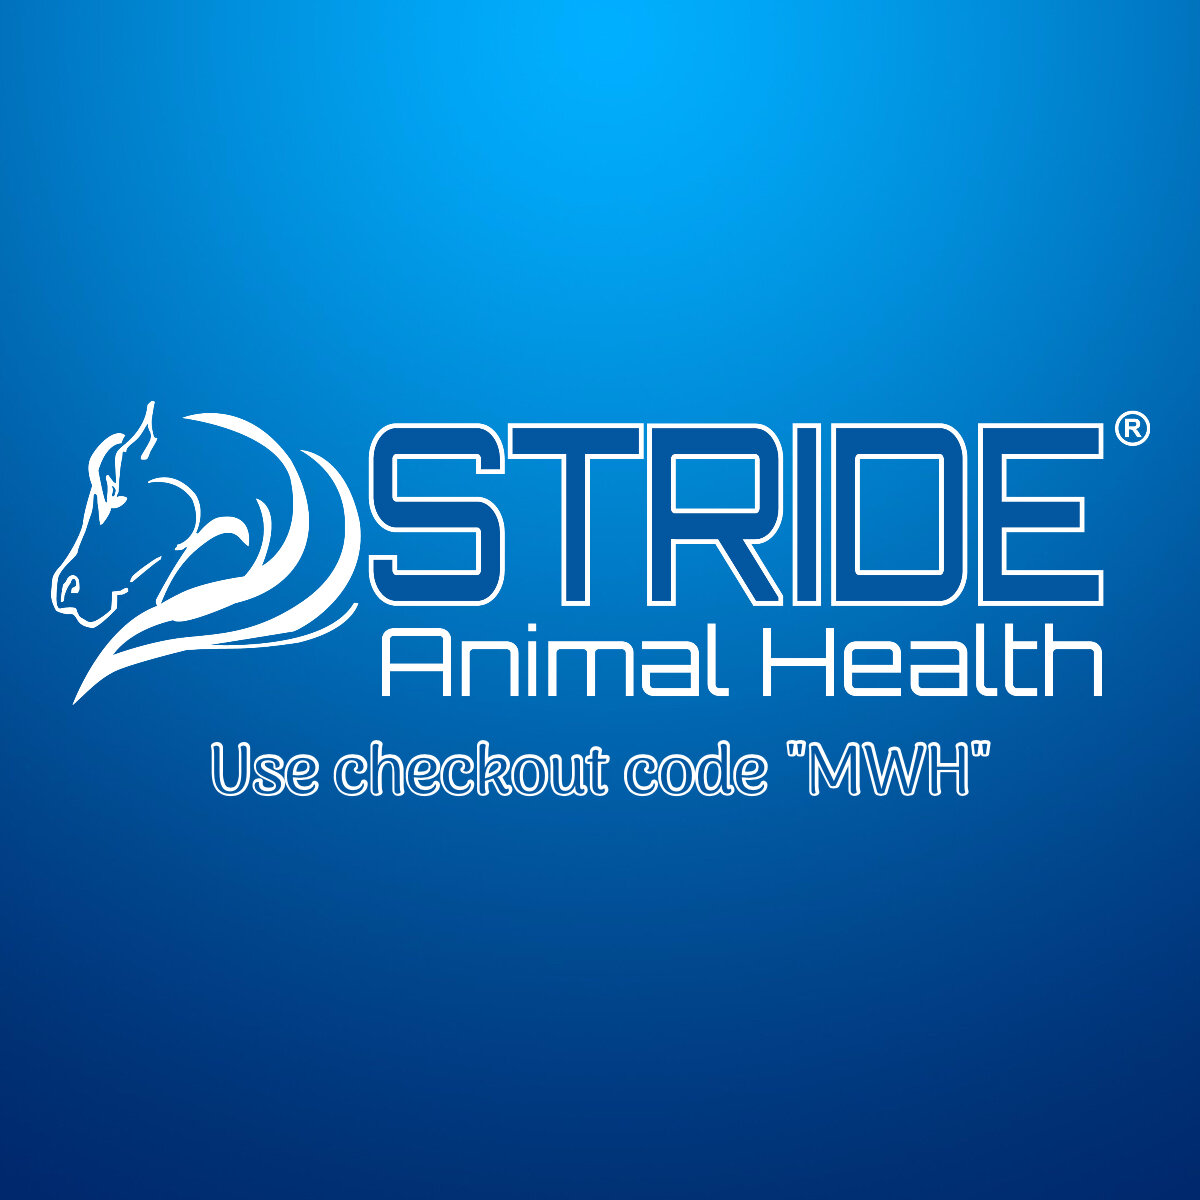 """Stride Animal Health - Use checkout code """"MWH"""" to receive 5% off your online order at StideAnimalHealth.com!There are SO many great products that you can get from Stride Animal Health! A couple of our favorites are the LIFELINE+ Equine and the 21-Day Hind Gut Health Program. We use Lifeline+, an incredibly effective plasma-based supplement, daily on most of the horses on the ranch. The Hind Gut Program worked wonders in turning around a few horses with digestive track issues. You can hear more about these and other great products on our podcasts episodes with Stride's resident guru, Dr. Jyme Nichols. Click the link and head over to the website to get more information!"""